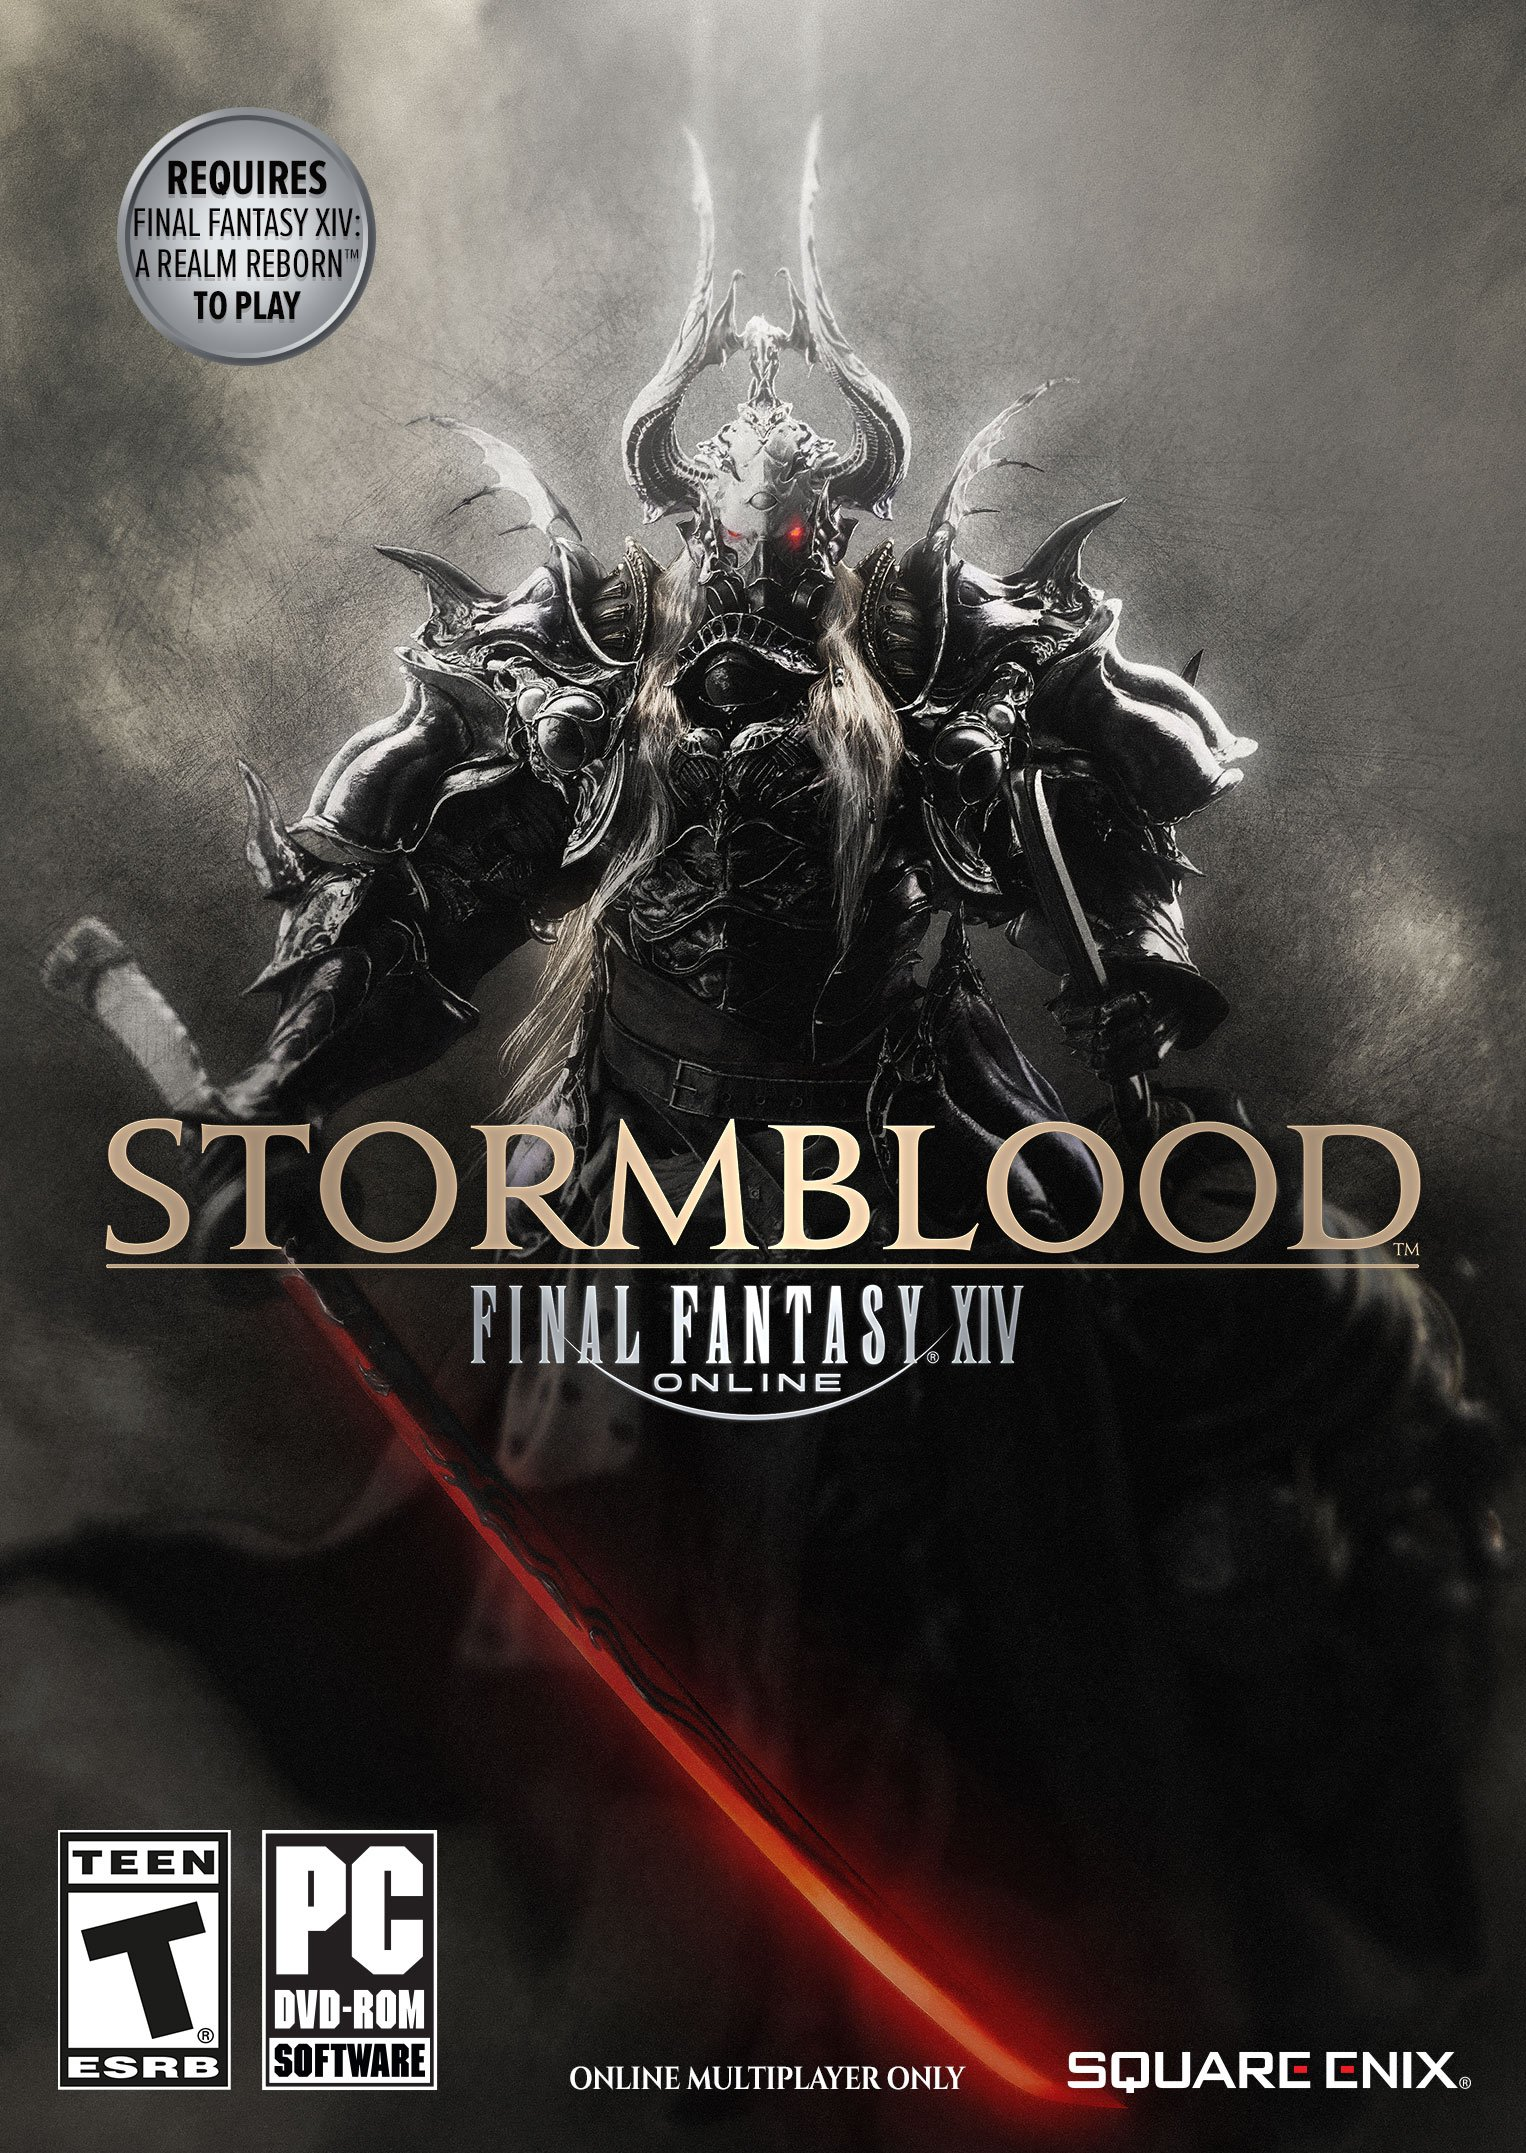 Buy Final Fantasy Xiv Stormblood Now!